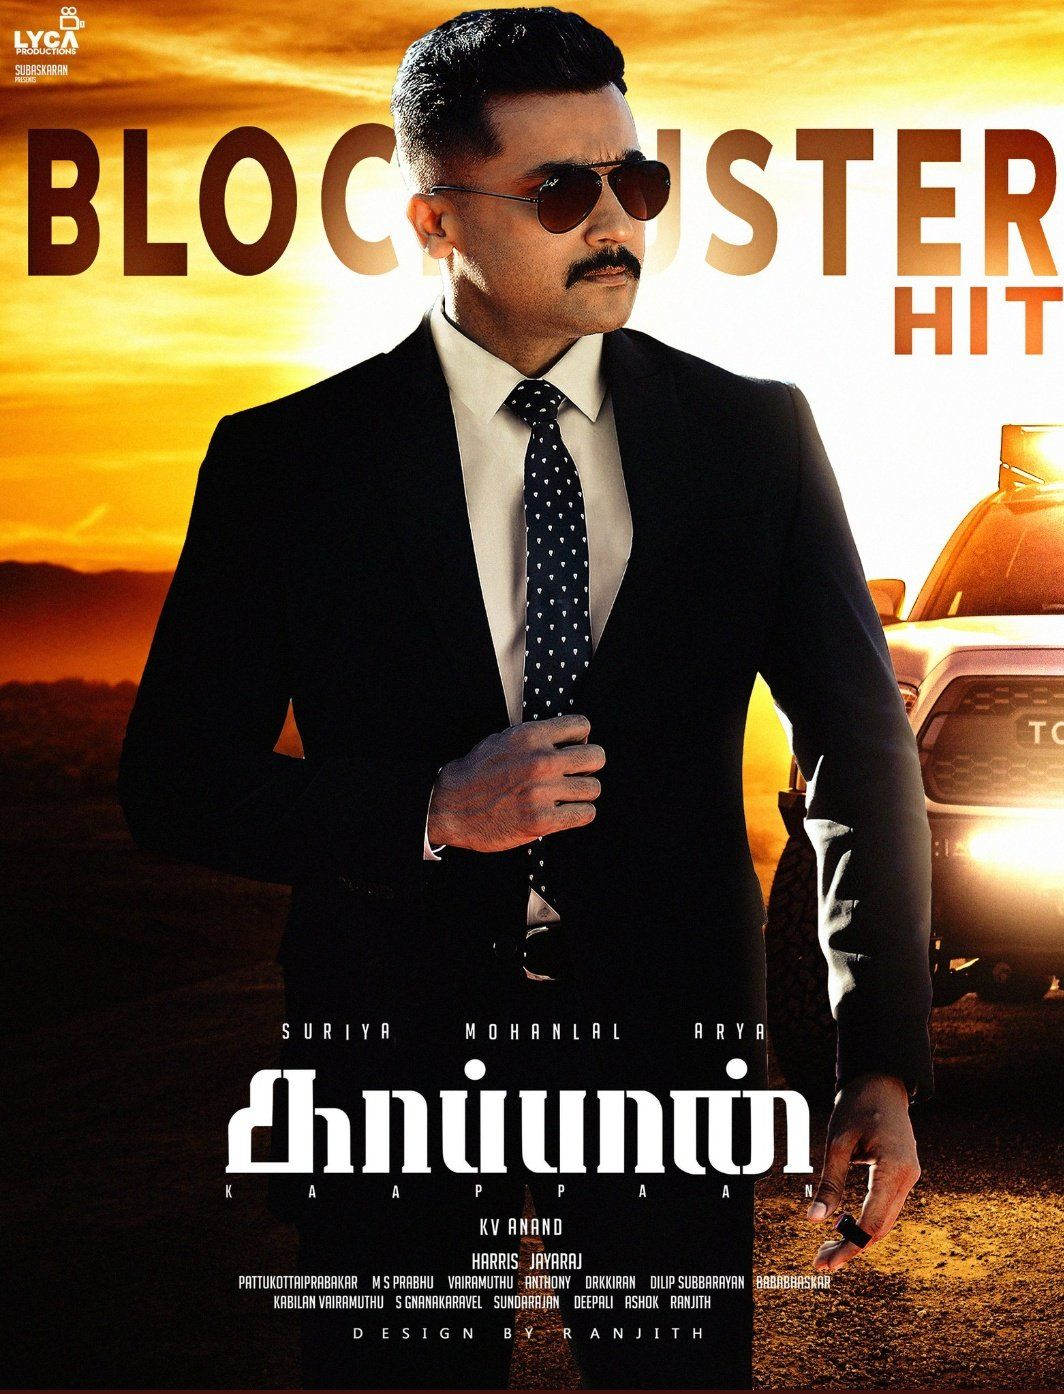 Kaappaan Box Office Collection Day 1 Mohanlal And Suriya Film Off To A Slow Start Film Box Office Collection Collection